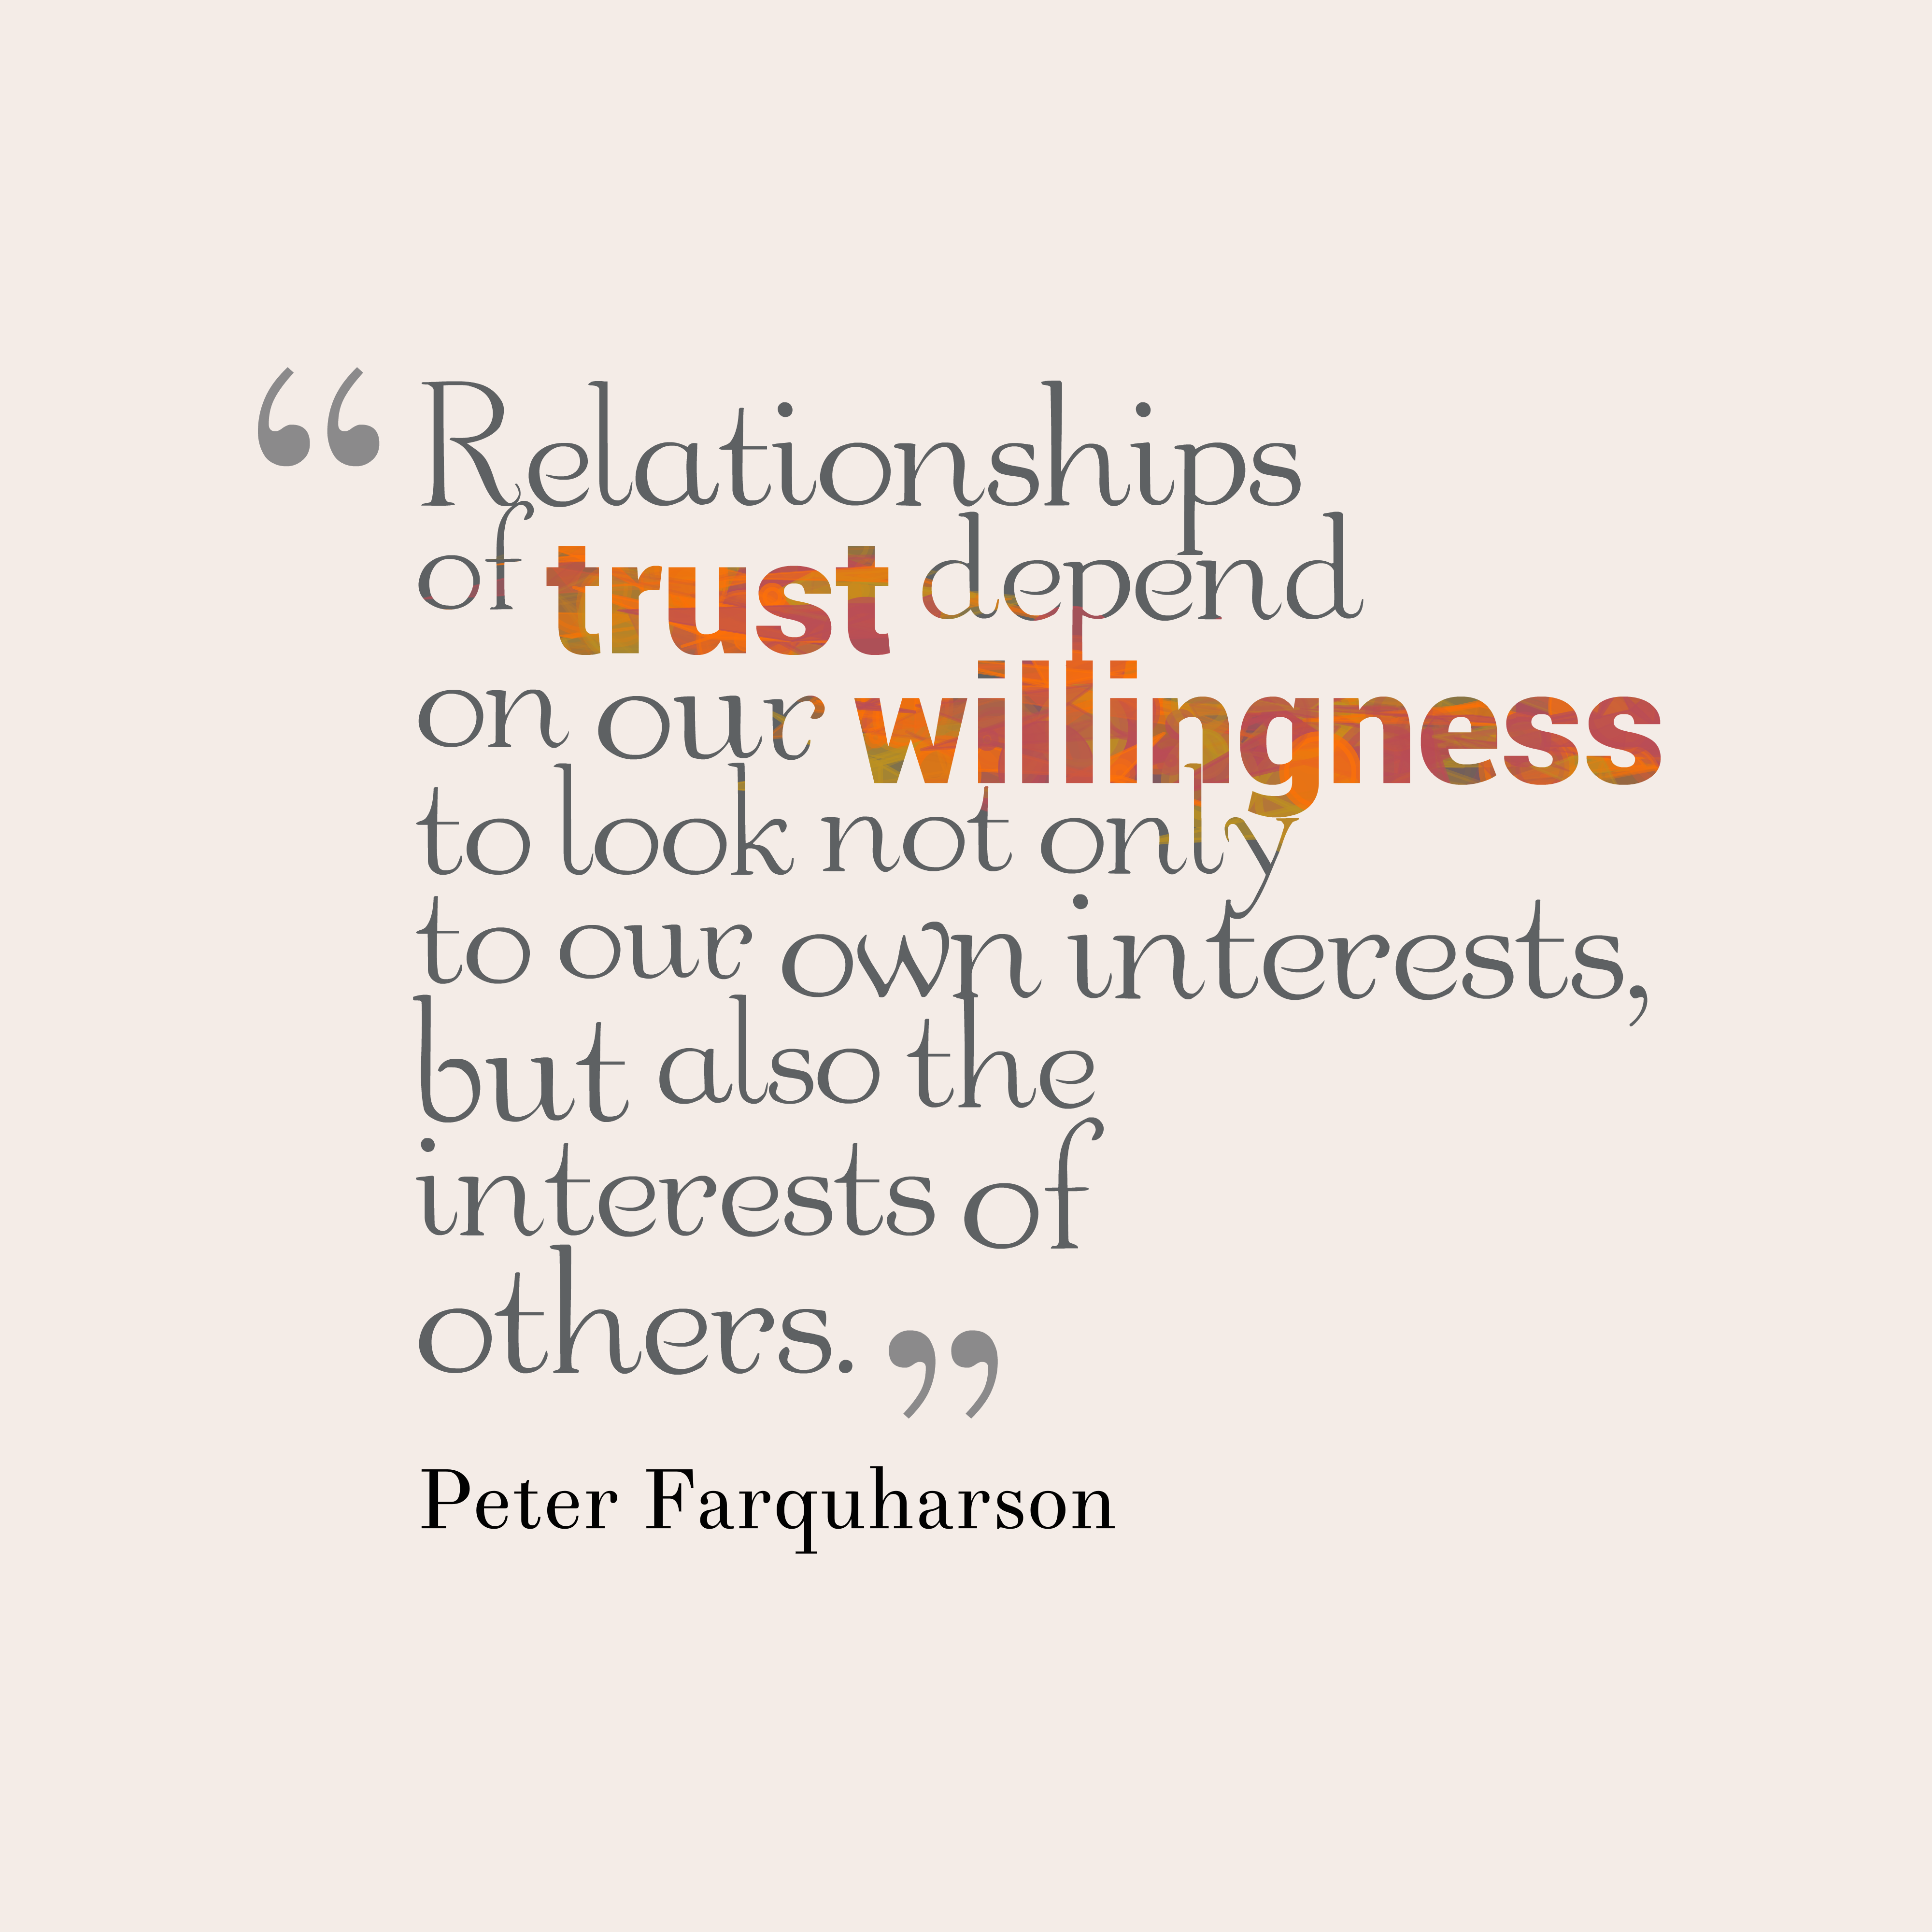 Quotes image of Relationships of trust depend on our willingness to look not only to our own interests, but also the interests of others.